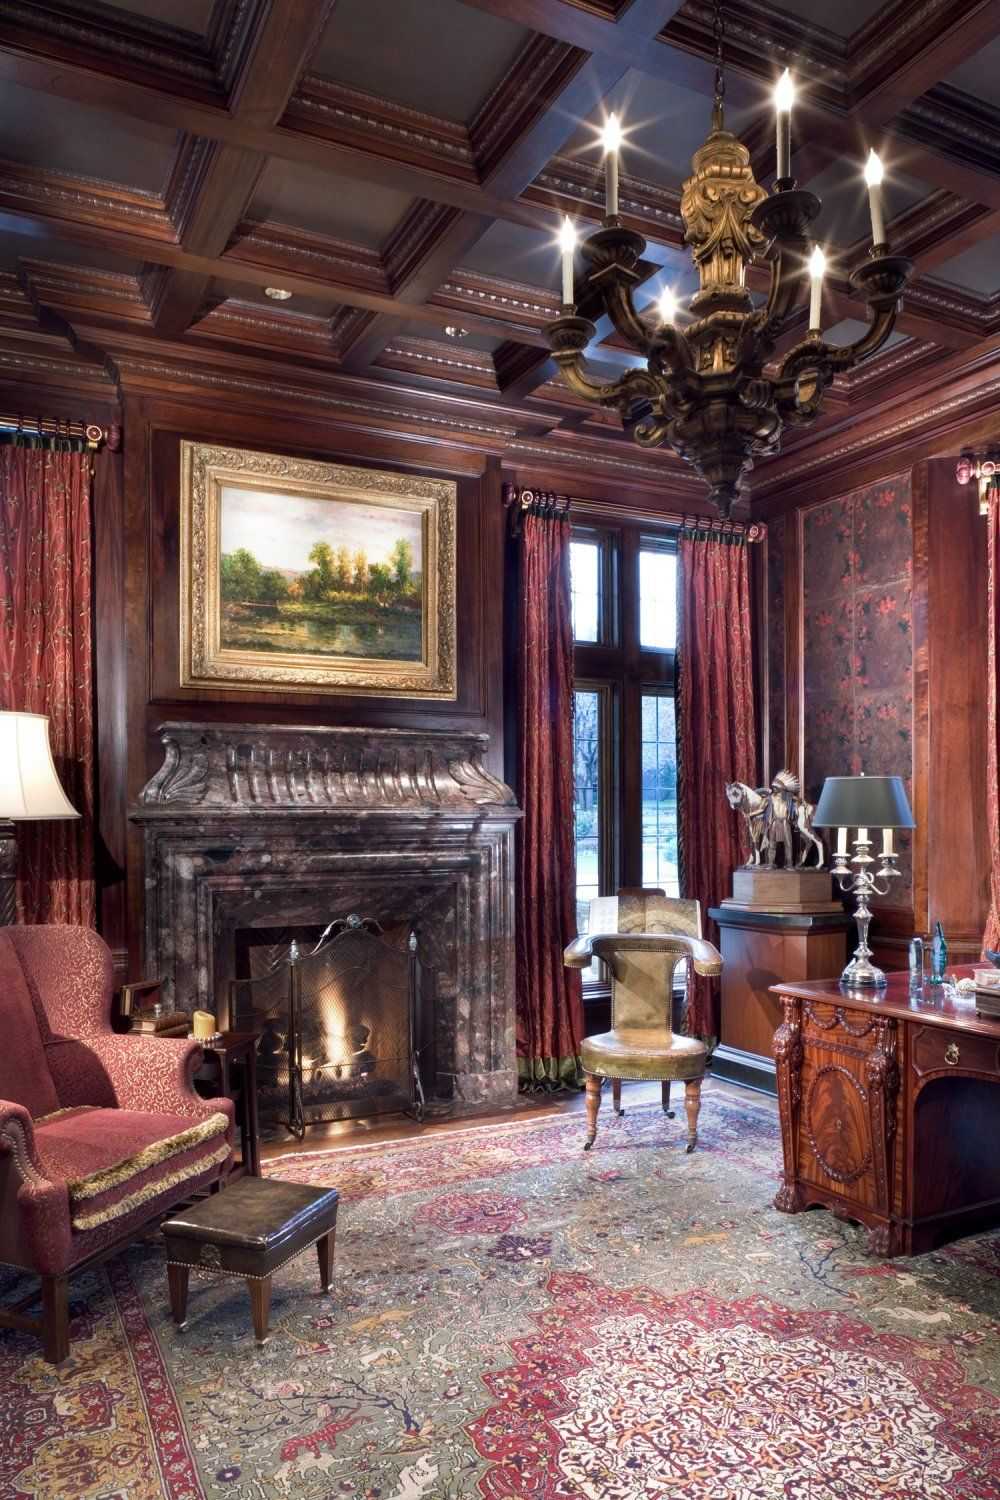 Interior Wood Paneling: Formal Home Office With Antique English Desk, Cherry Wood